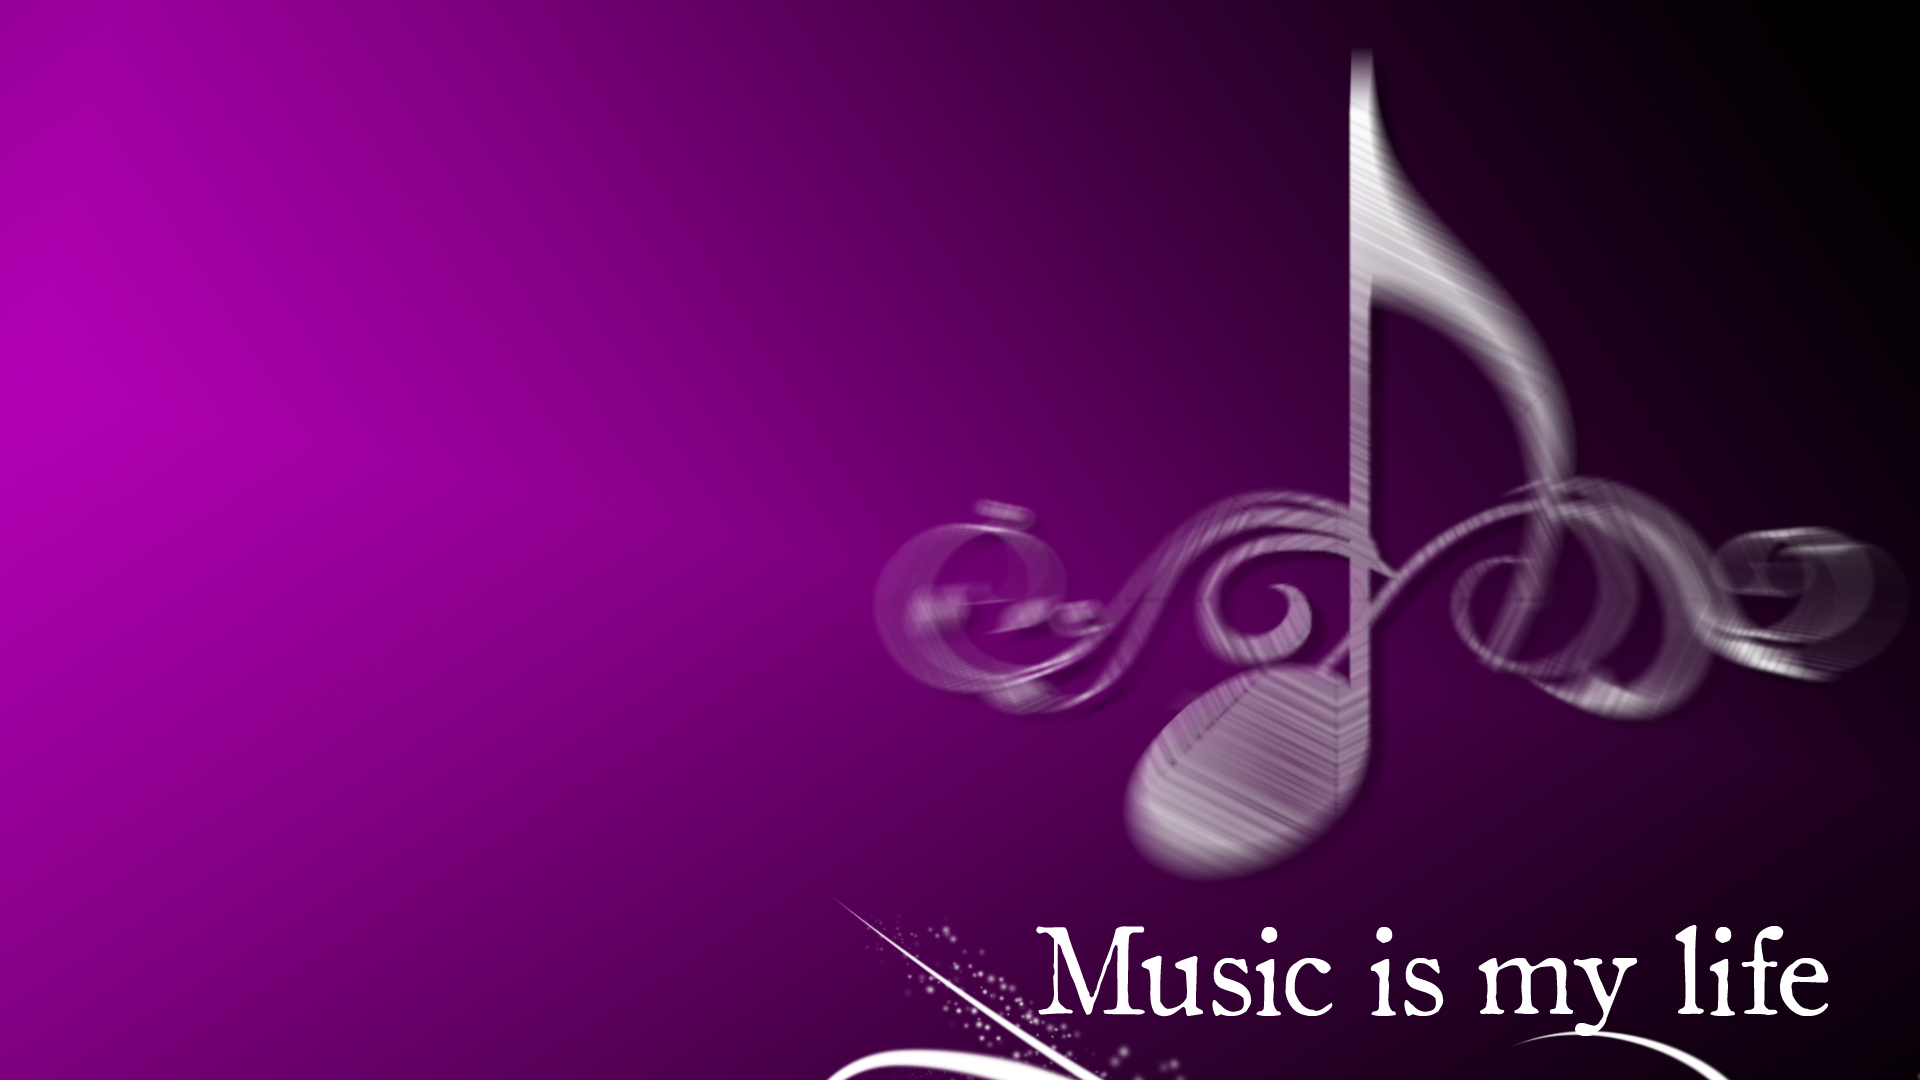 68 Music Is My Life Wallpaper On Wallpapersafari